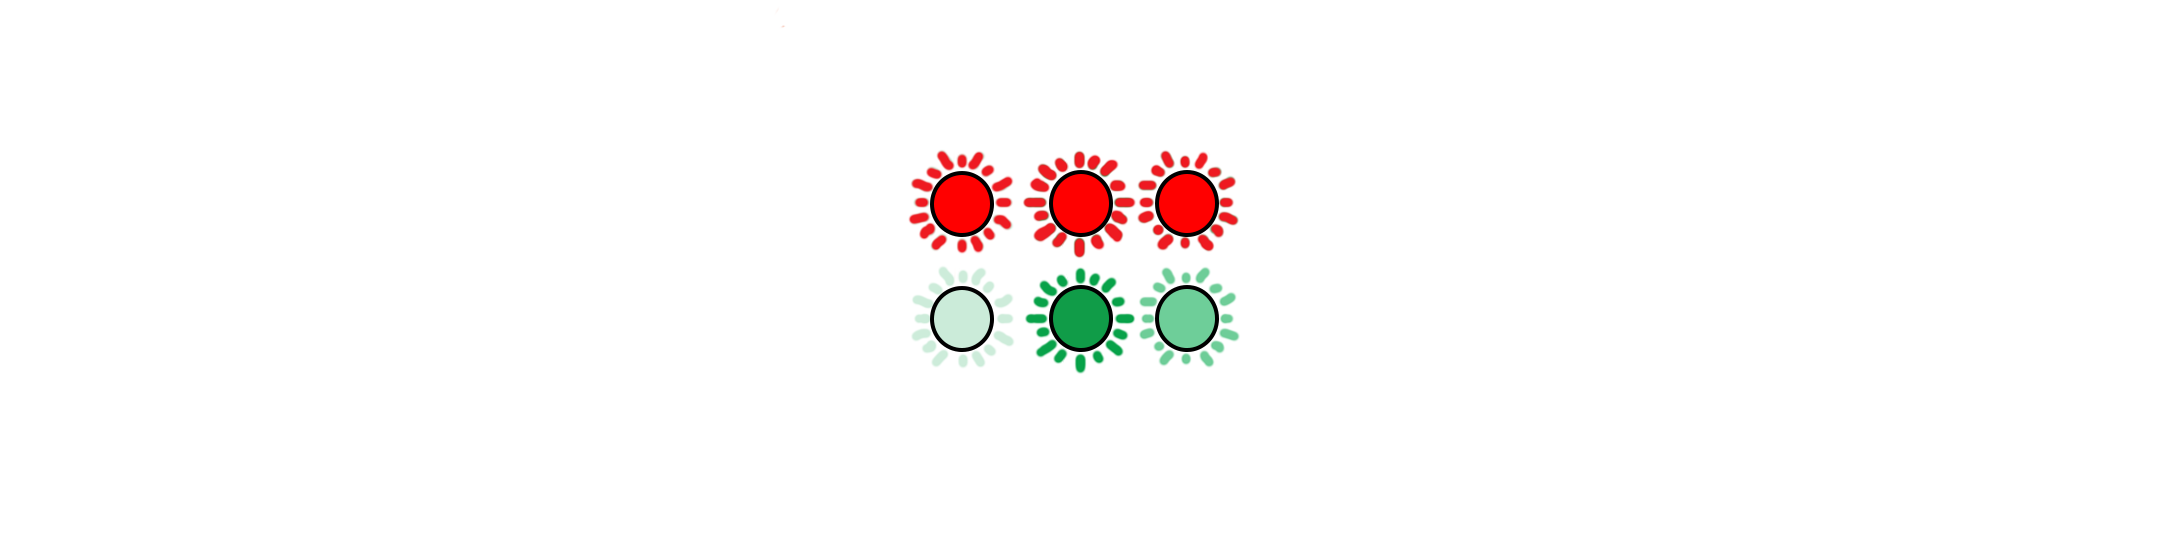 Jazzed Green & Red Dots.png